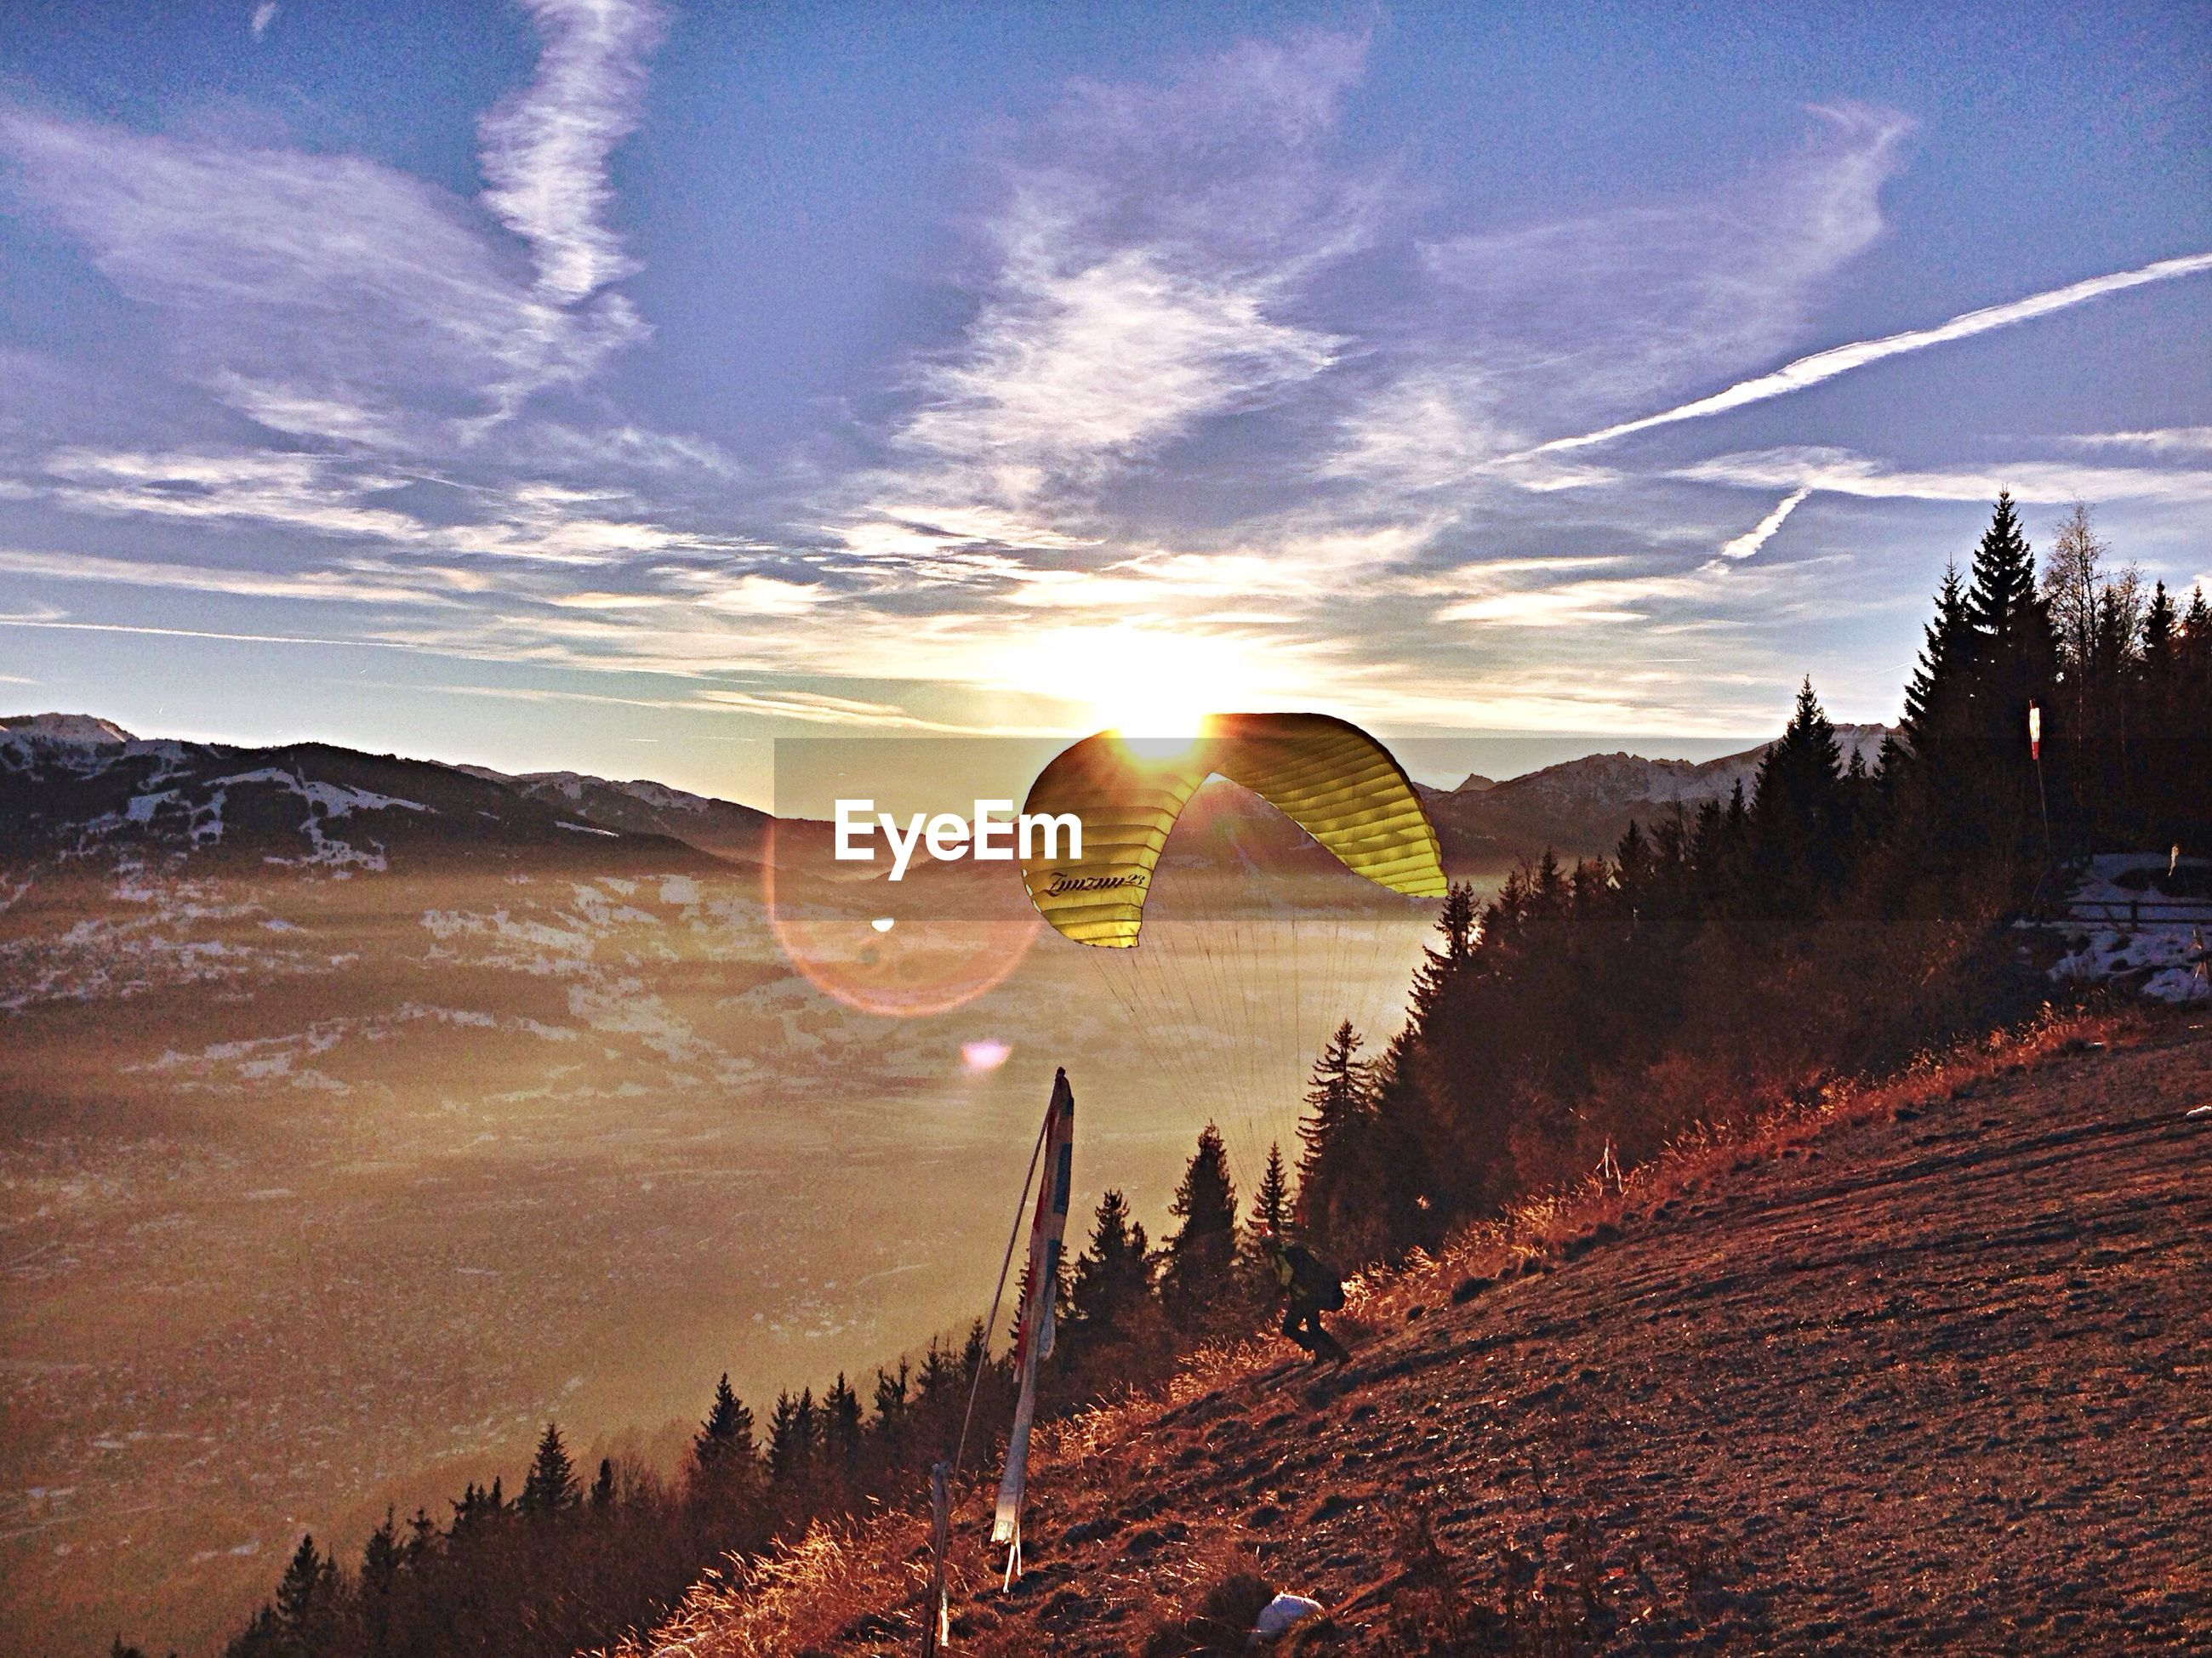 Person paragliding from mountain against sky